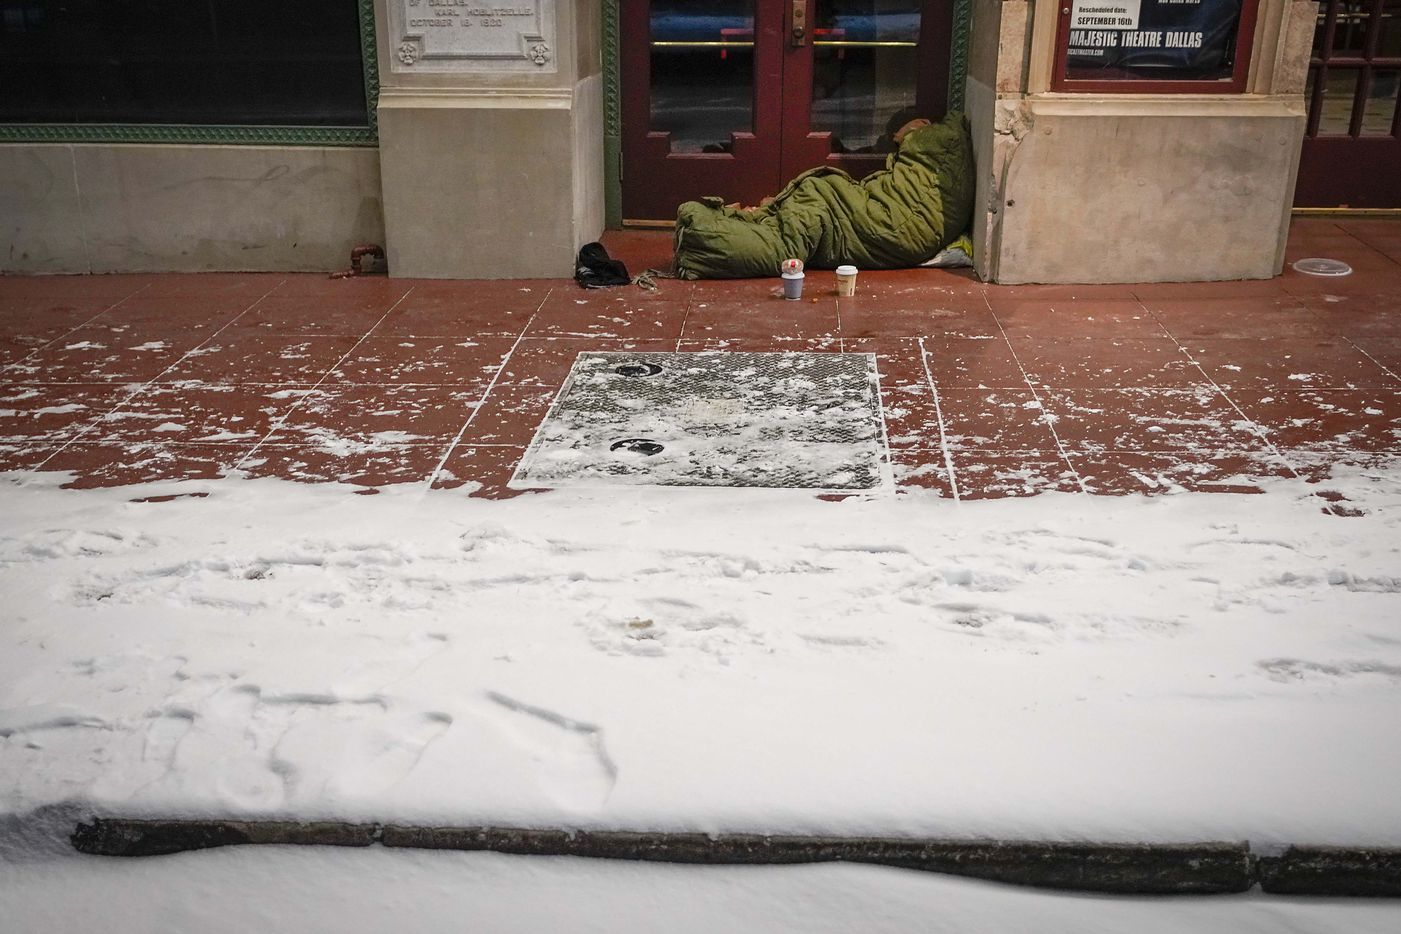 With temperatures already falling into the single digits homeless person sleeps in the doorway of the Majestic Theater as a winter storm brings snow and freezing temperatures to North Texas on Sunday, Feb. 14, 2021, in Dallas.